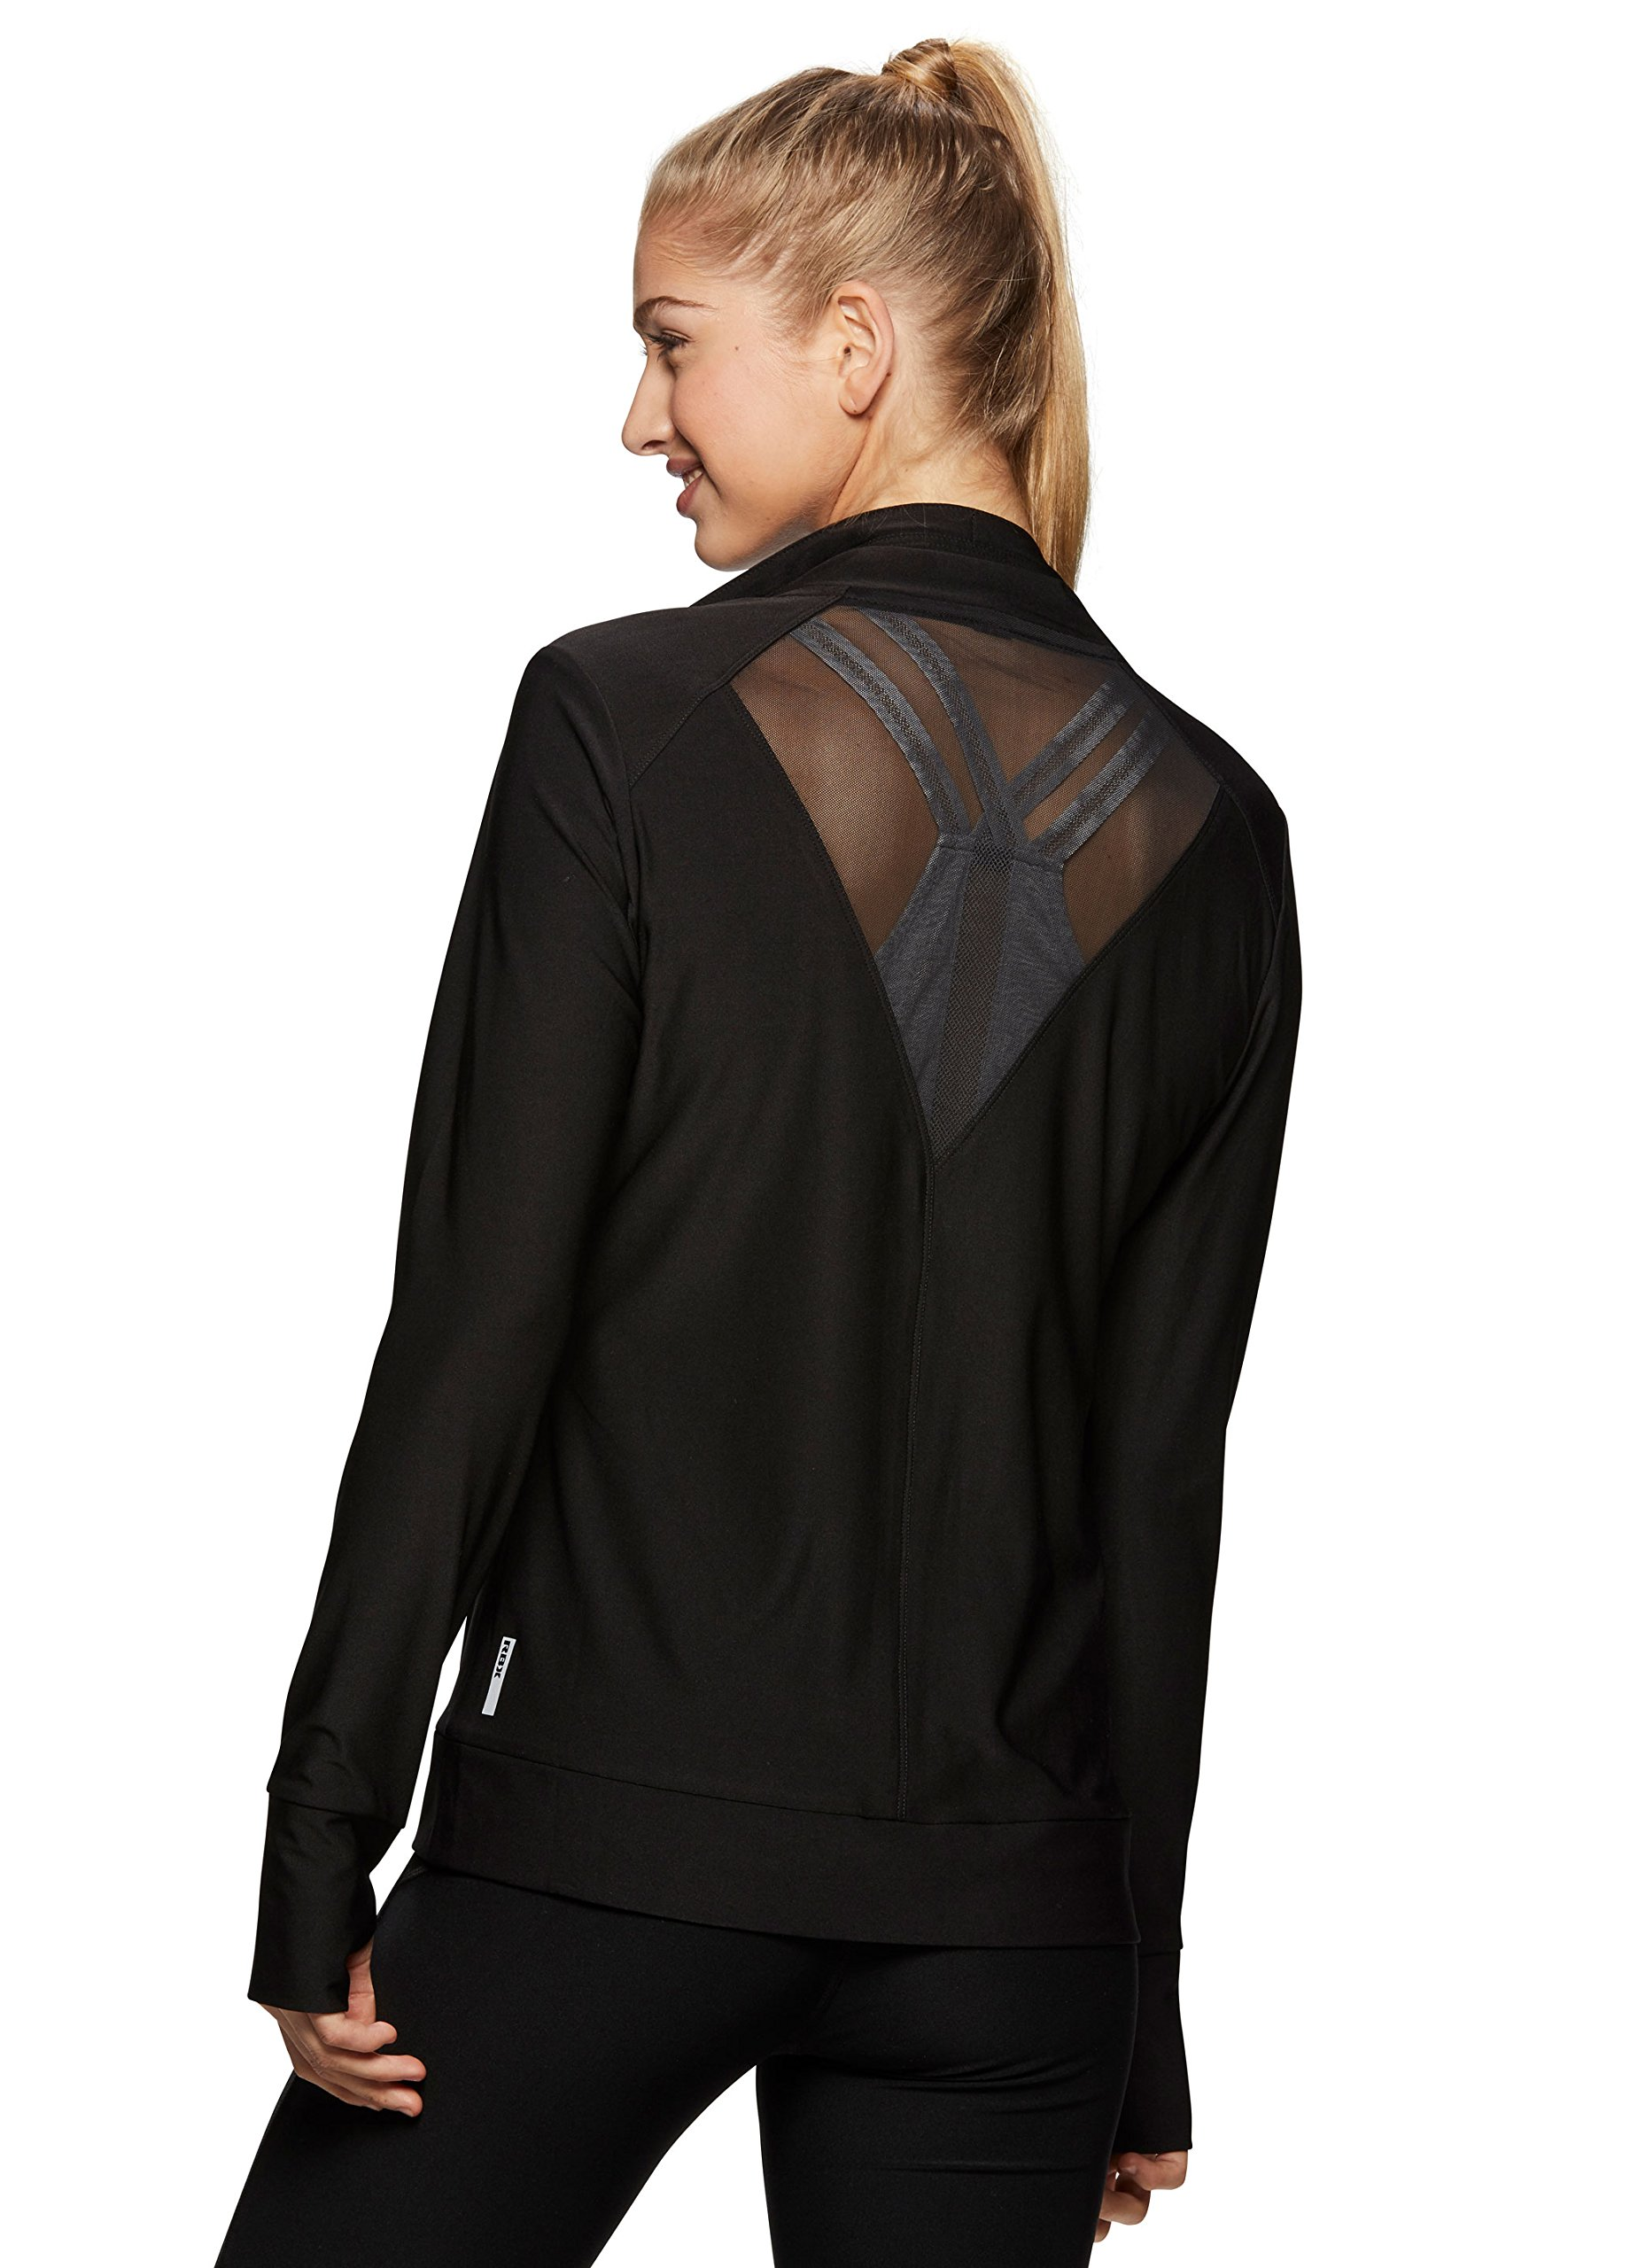 RBX Active Women's Running Jacket with Mesh Inserts Black S